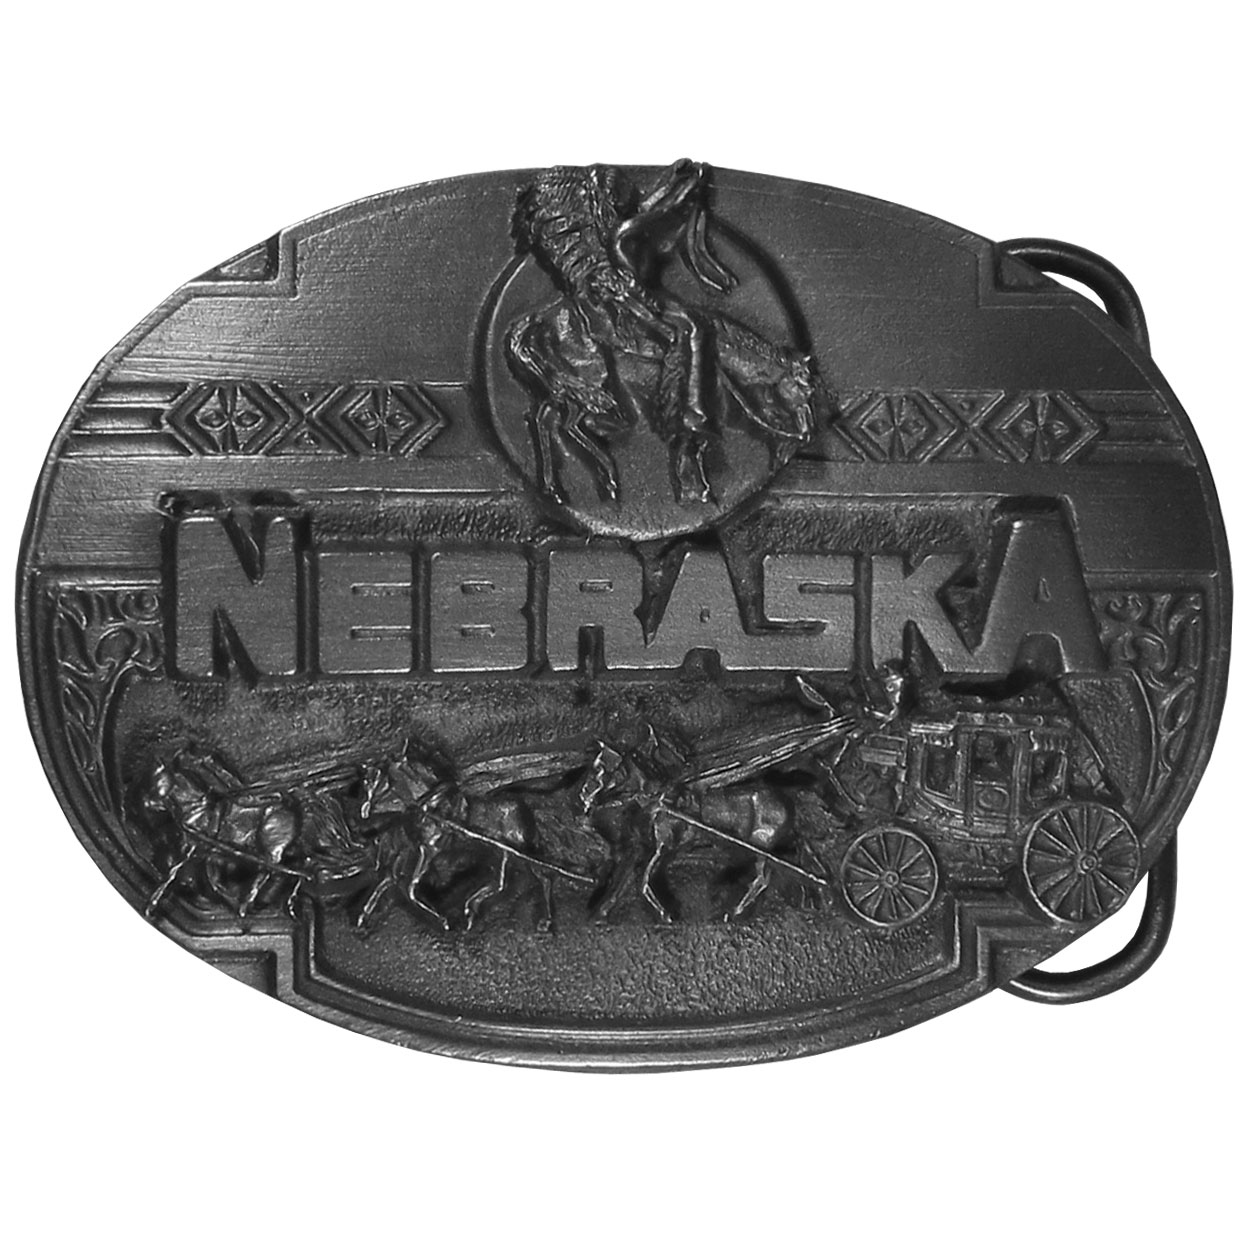 "Nebraska Stage Coach Antiqued Belt Buckle - ""Do you love Nebraska?  This belt buckle is for you!  """"Nebraska"""" is written in bold with a stage coach and horses, an Indian on a horse and Native American design detail. Finely sculpted and intricately designed belt buckle. Our unique designs often become collector's items."""